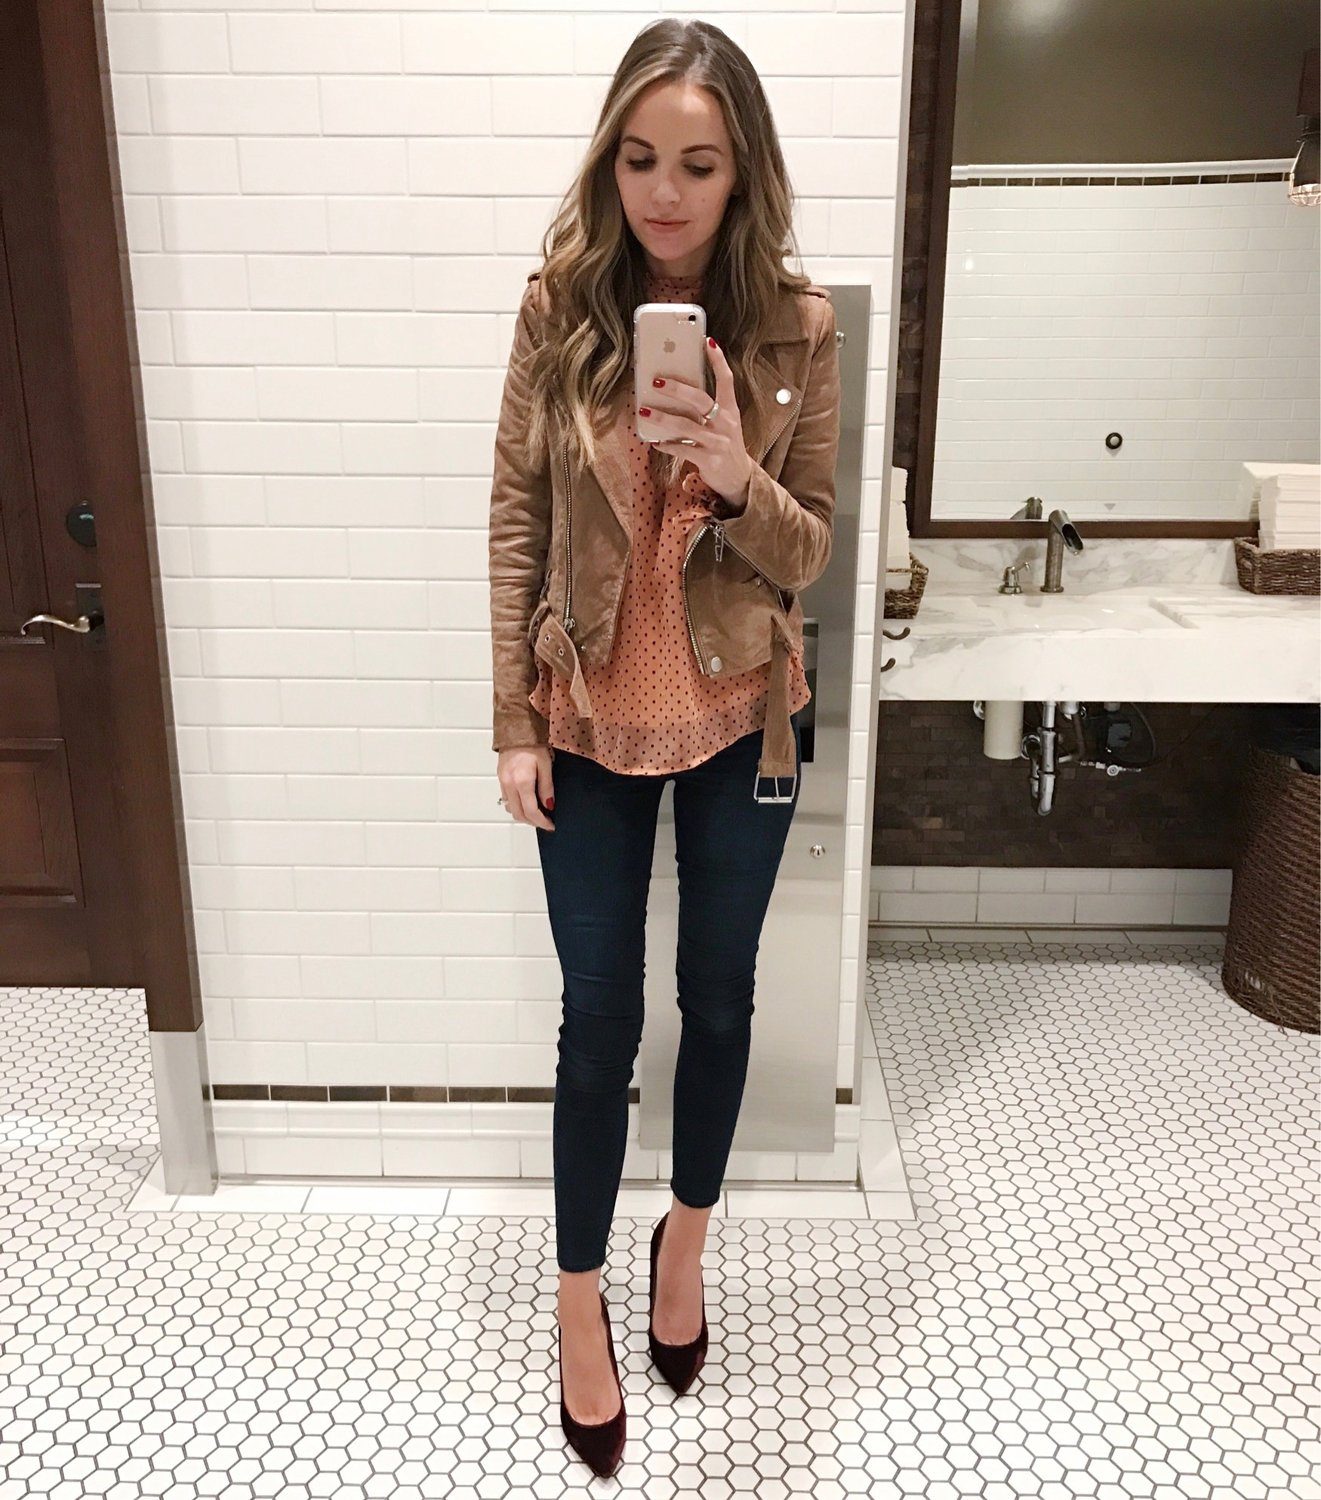 Merrick's Art Blush and Suede Blank NYC Jacket